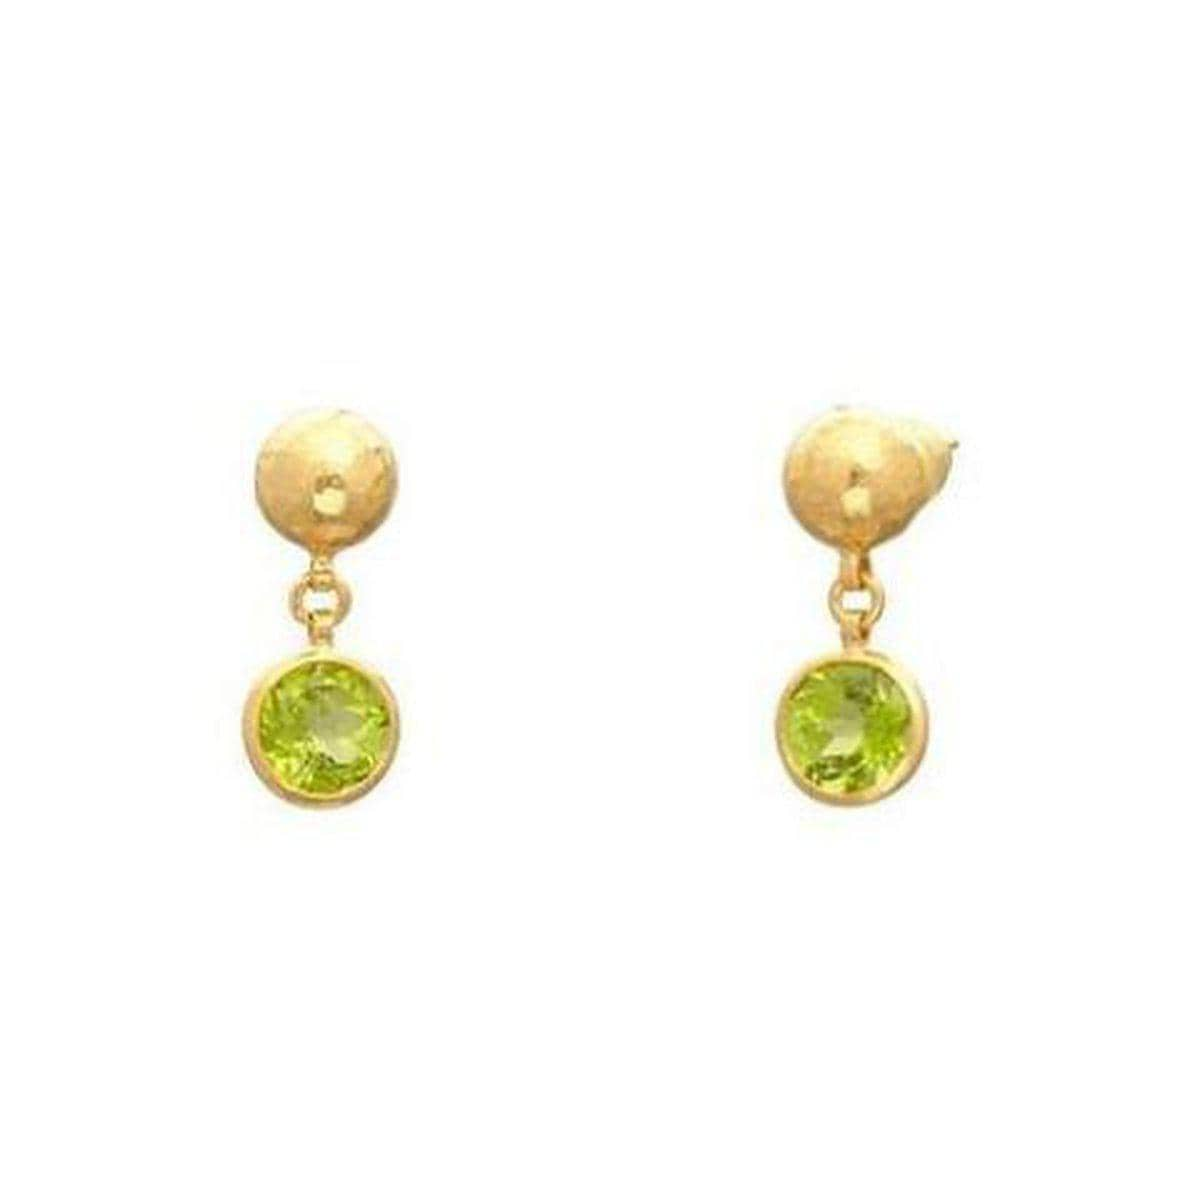 Rainbow 24K Gold Peridot Earrings - E-U25819-PD